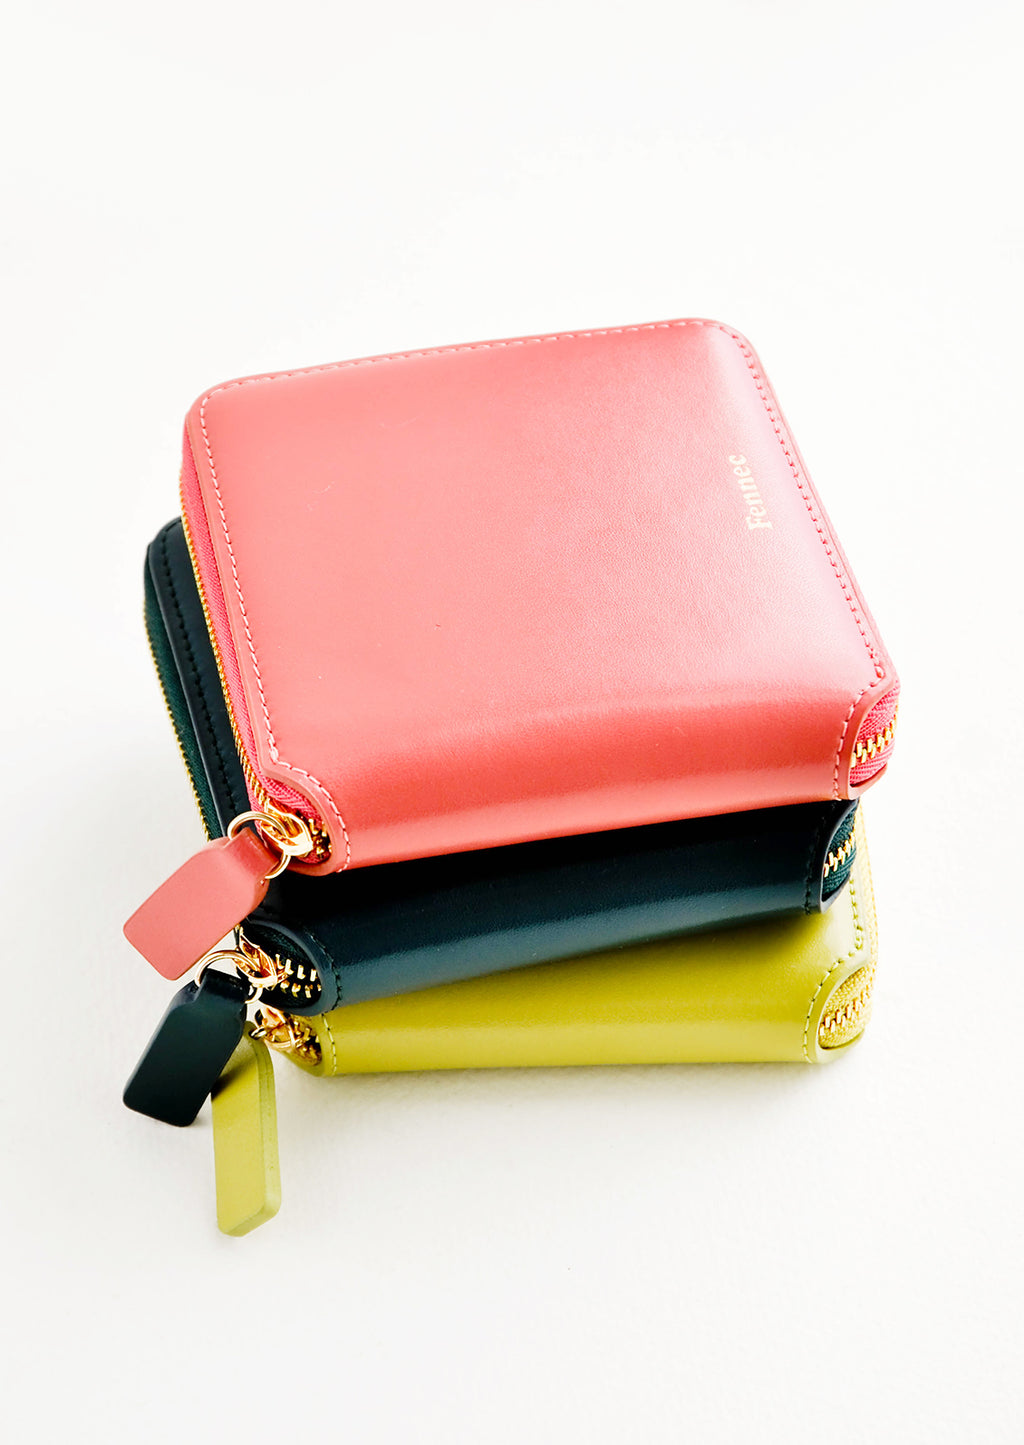 3: Product show showing multiple colors of zip wallets in a stack.